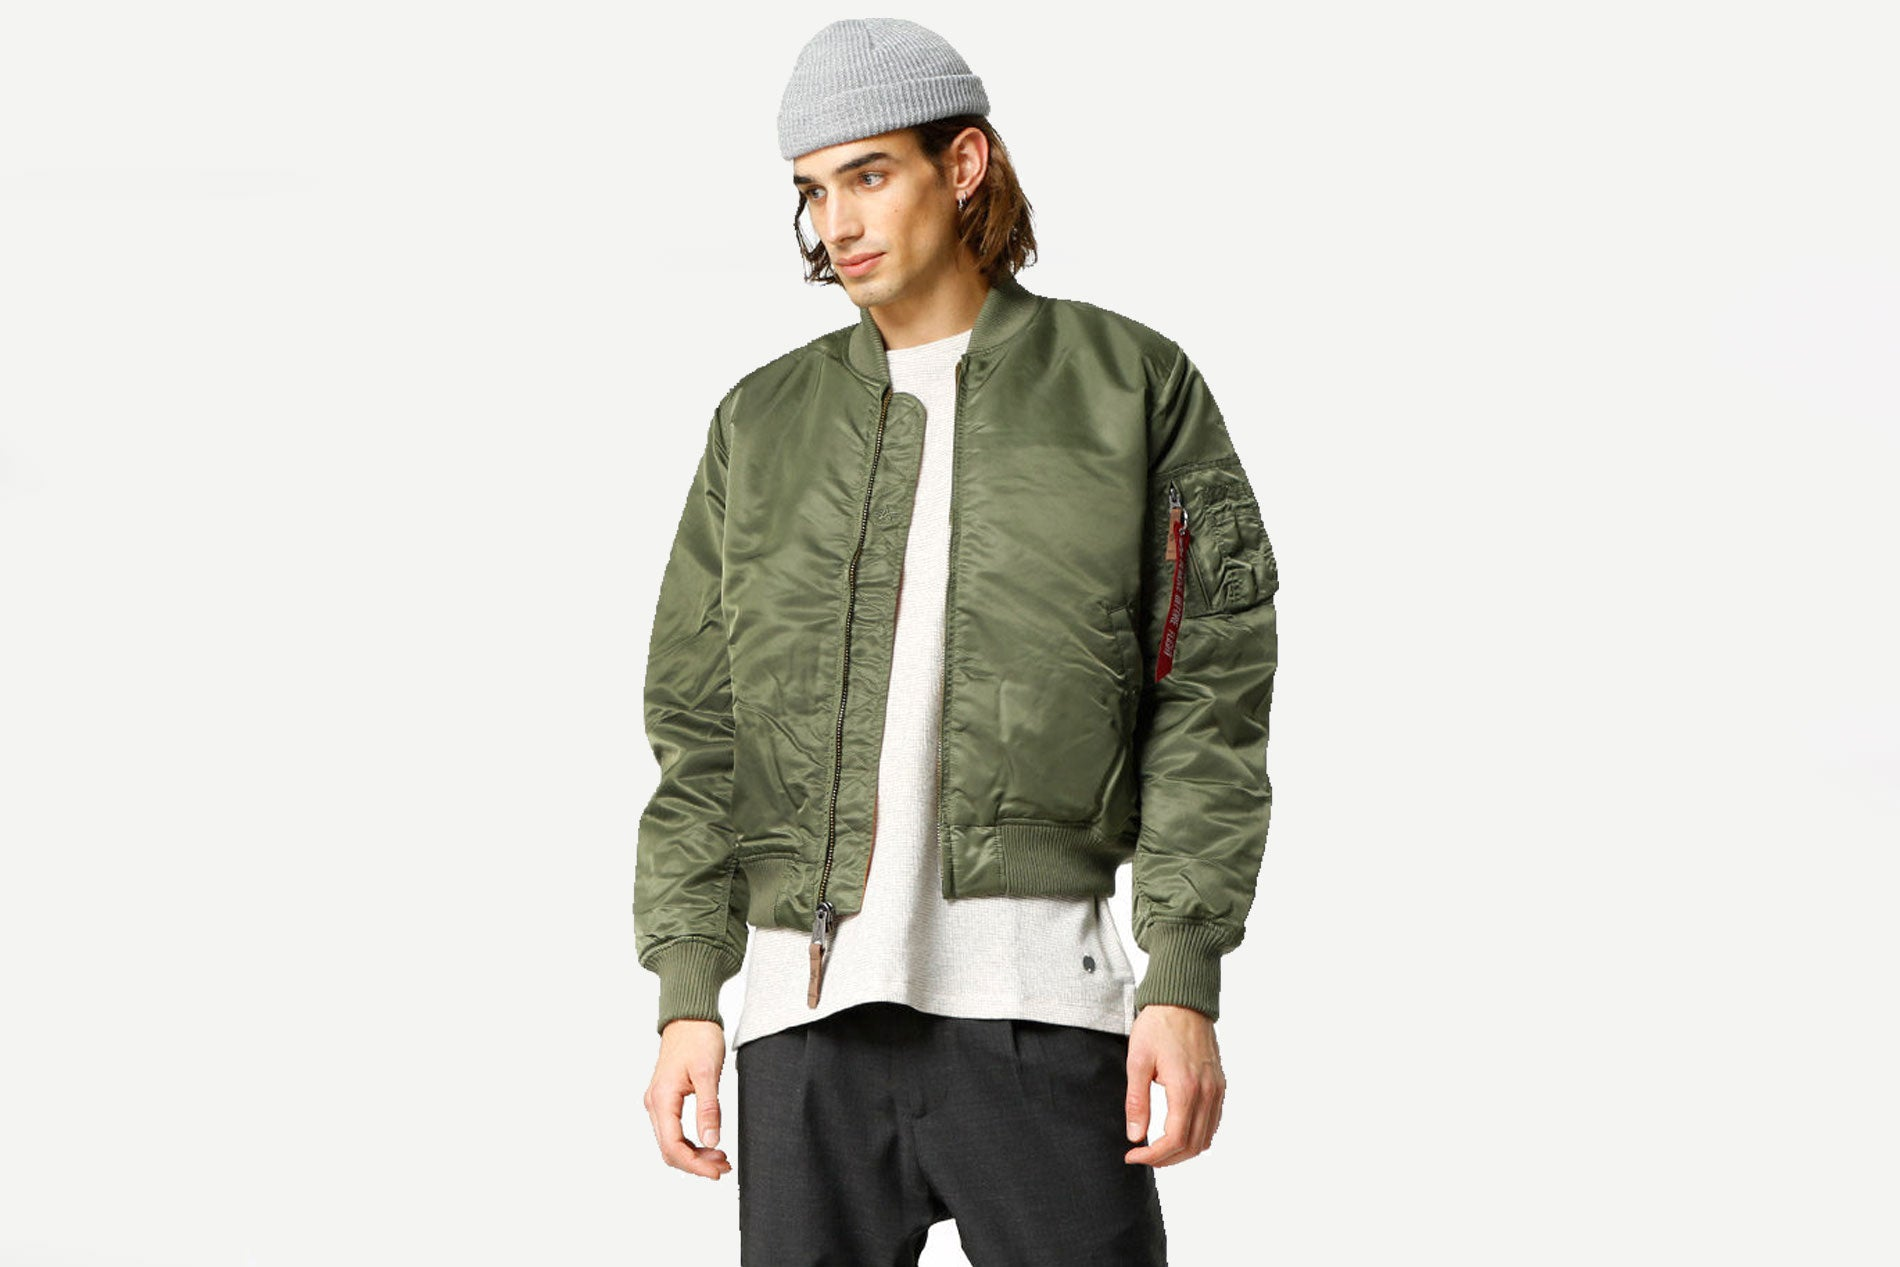 finest selection 9de49 96ced Alpha Industries - 168100 MA-1 VF 59 LONG JKT Bomber Winter Jacket (Sage  Green)